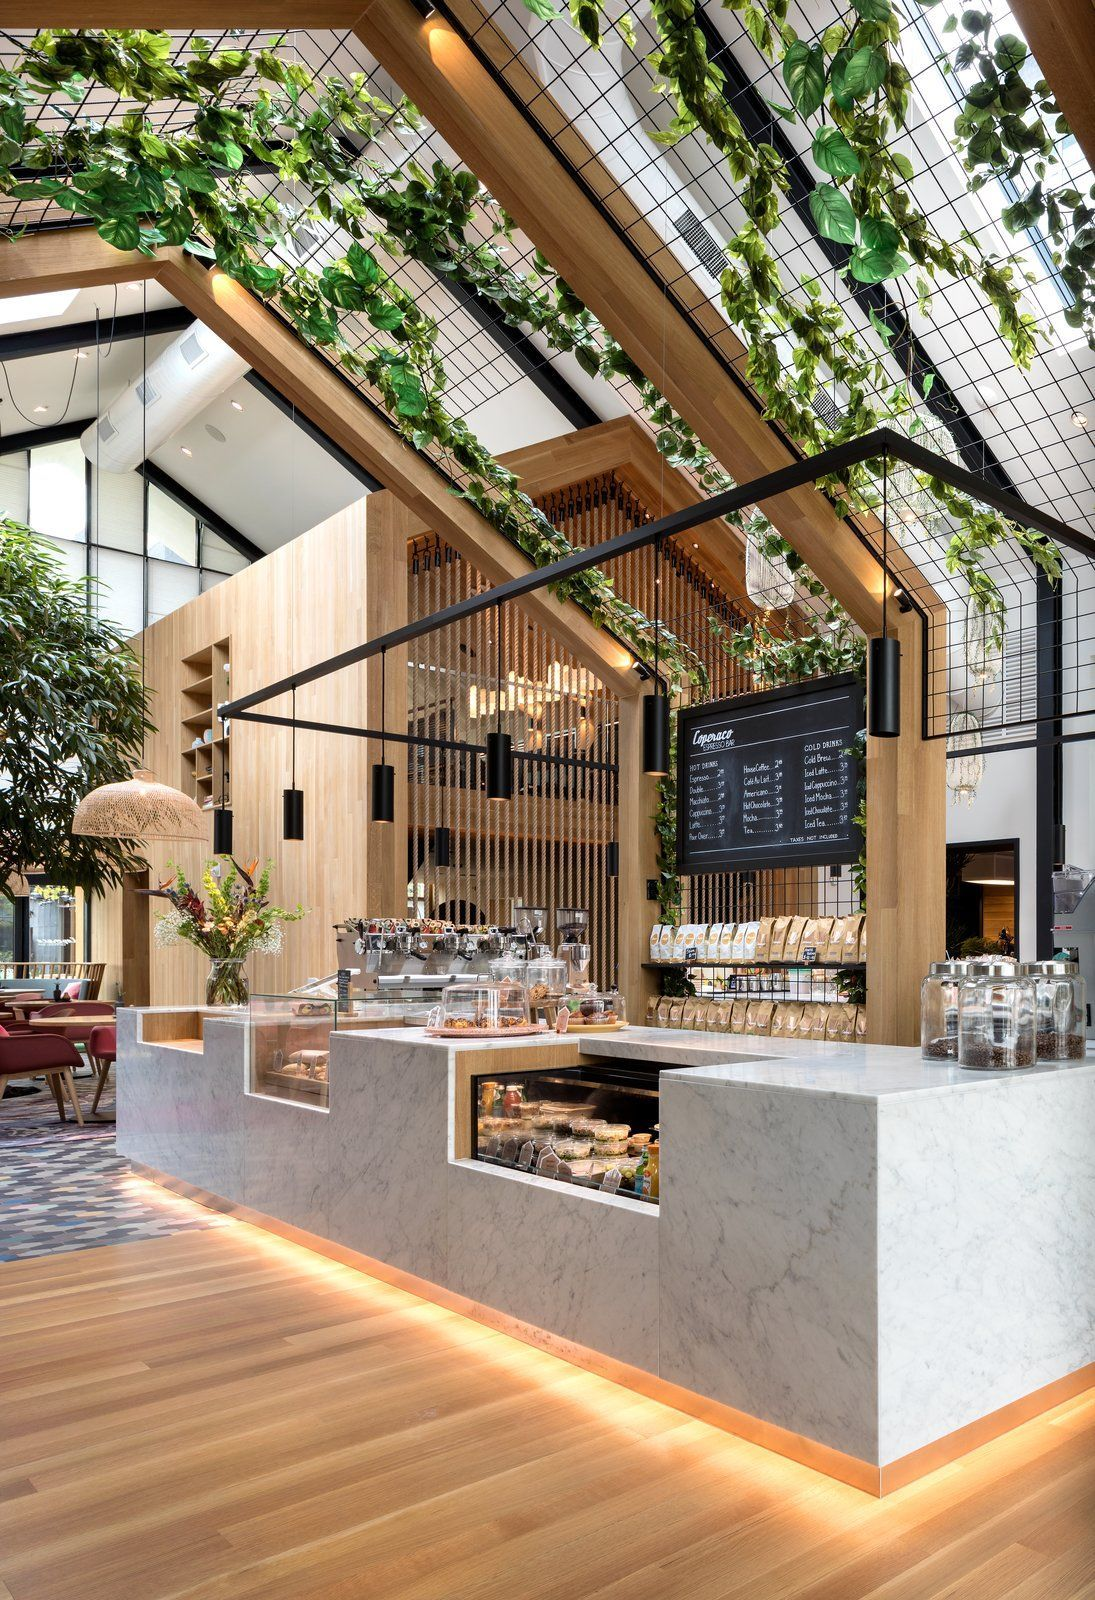 Boutique Coffee Roaster Coperaco's First Cafe Holds a Modern Tree House -   25 house decor interior design